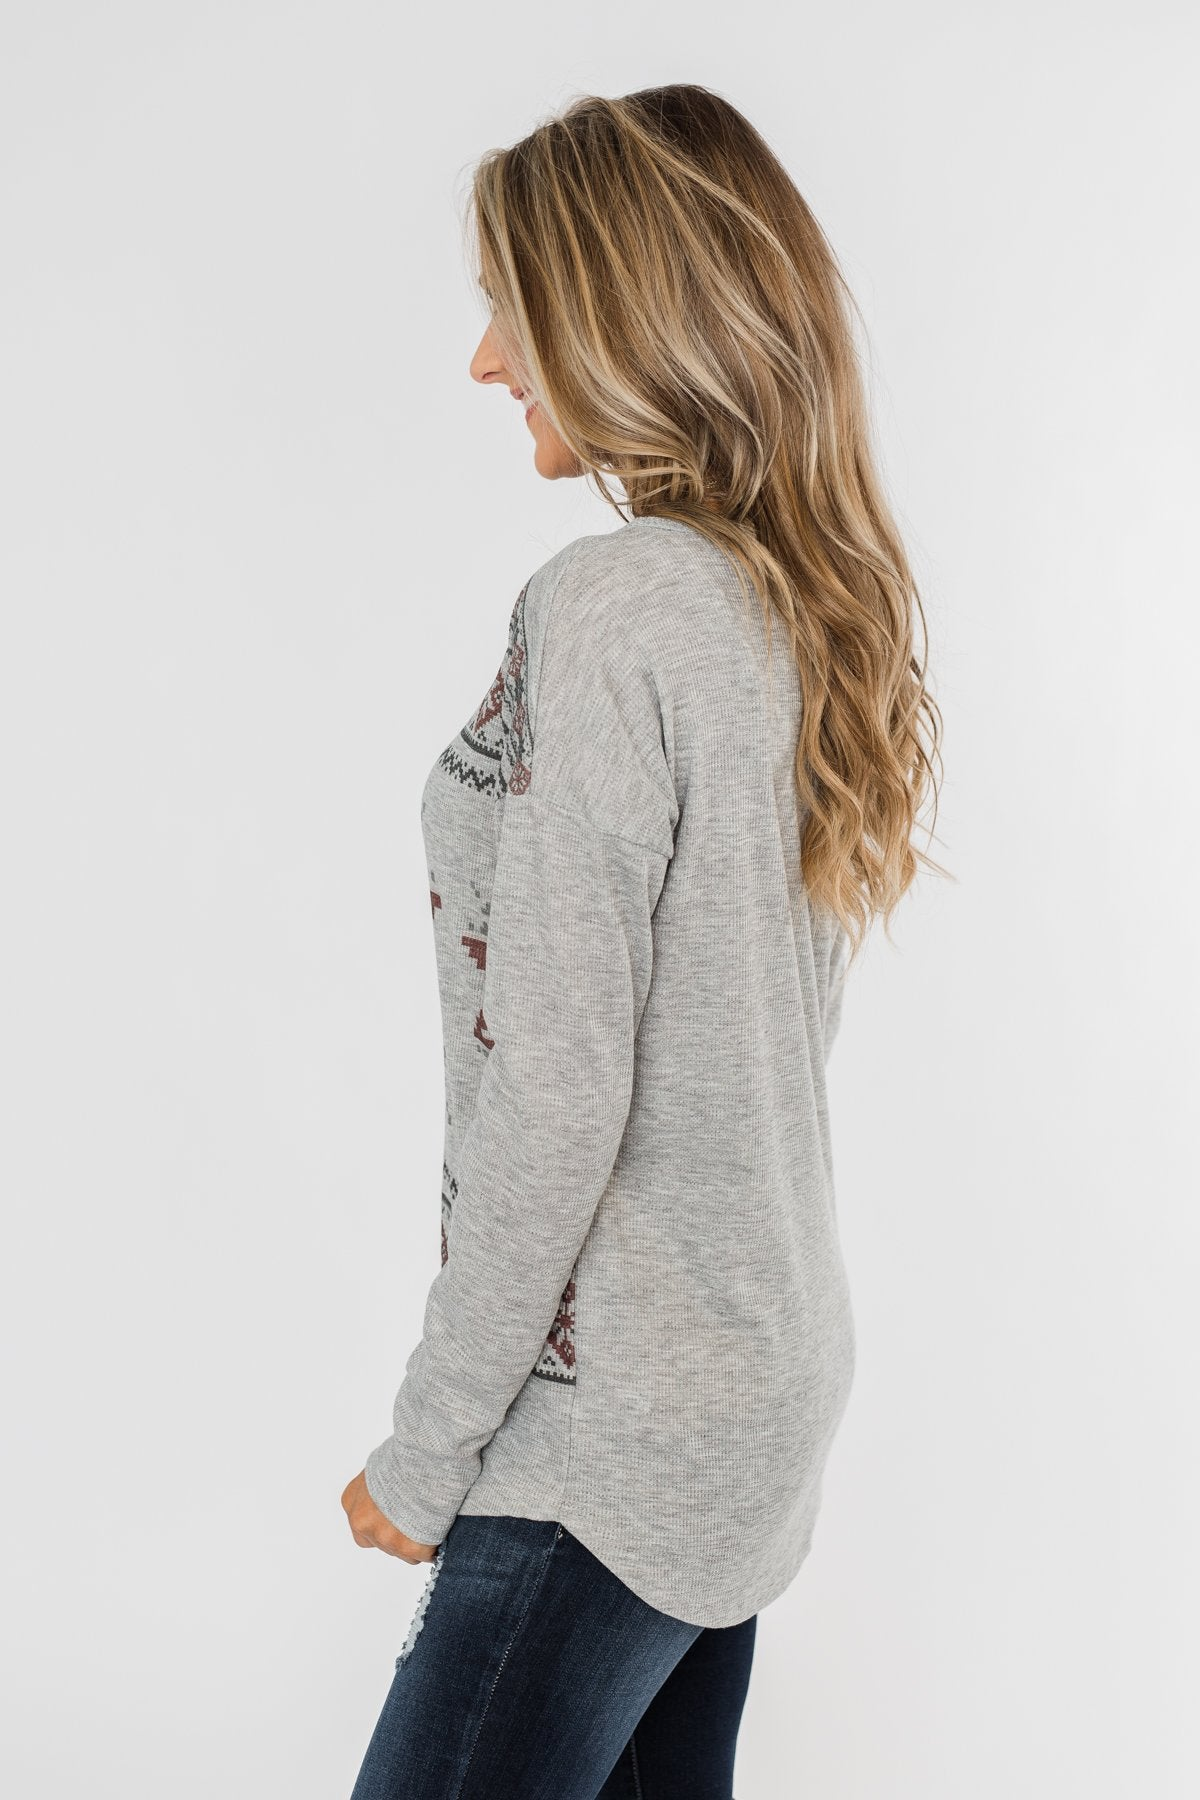 Winter Wonderland Thermal Top- Grey